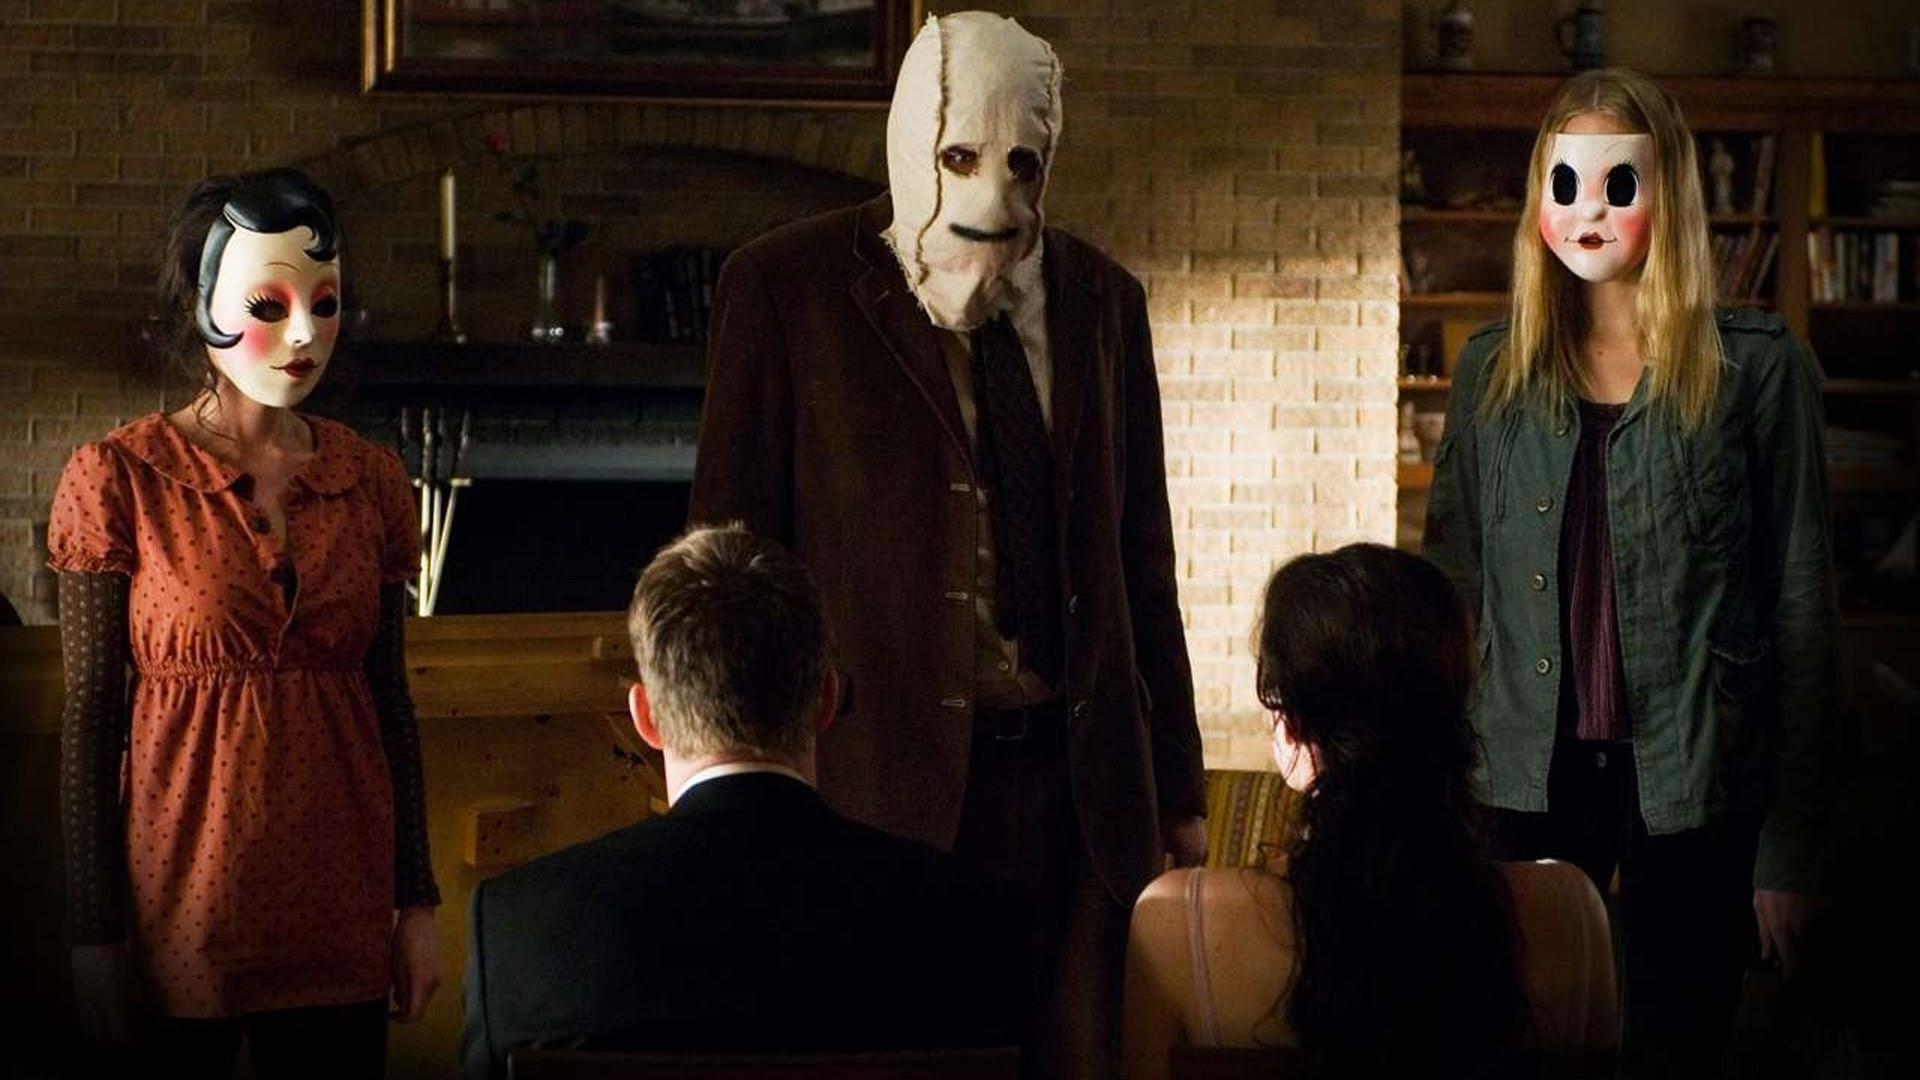 Scott Speedman and Liv Tyler with their home invaded by The Strangers